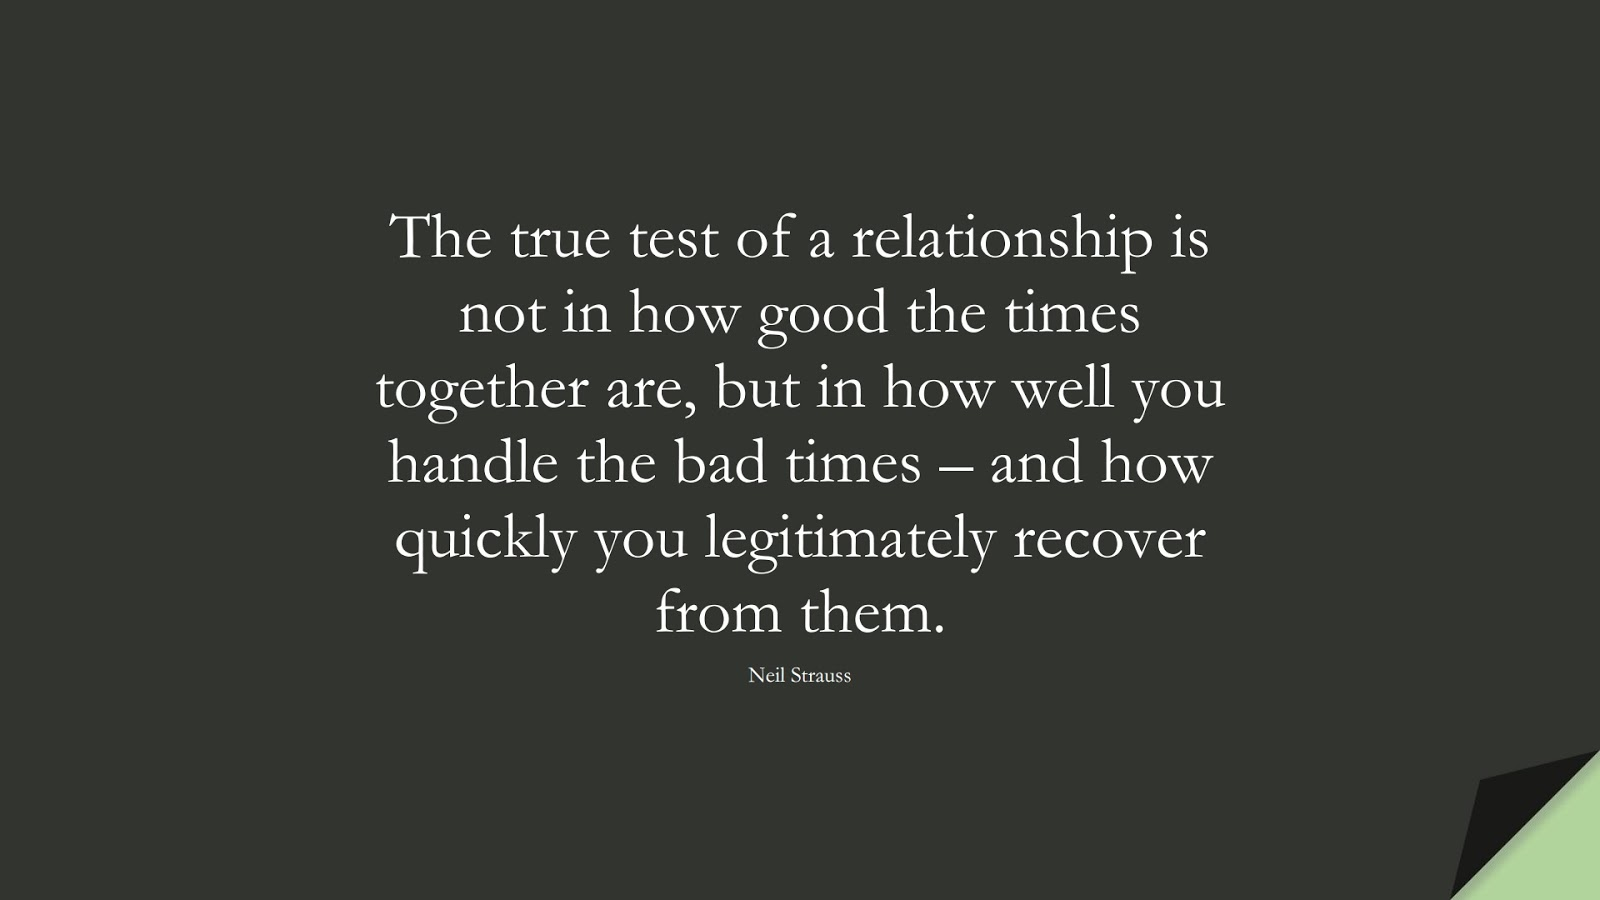 The true test of a relationship is not in how good the times together are, but in how well you handle the bad times – and how quickly you legitimately recover from them. (Neil Strauss);  #RelationshipQuotes